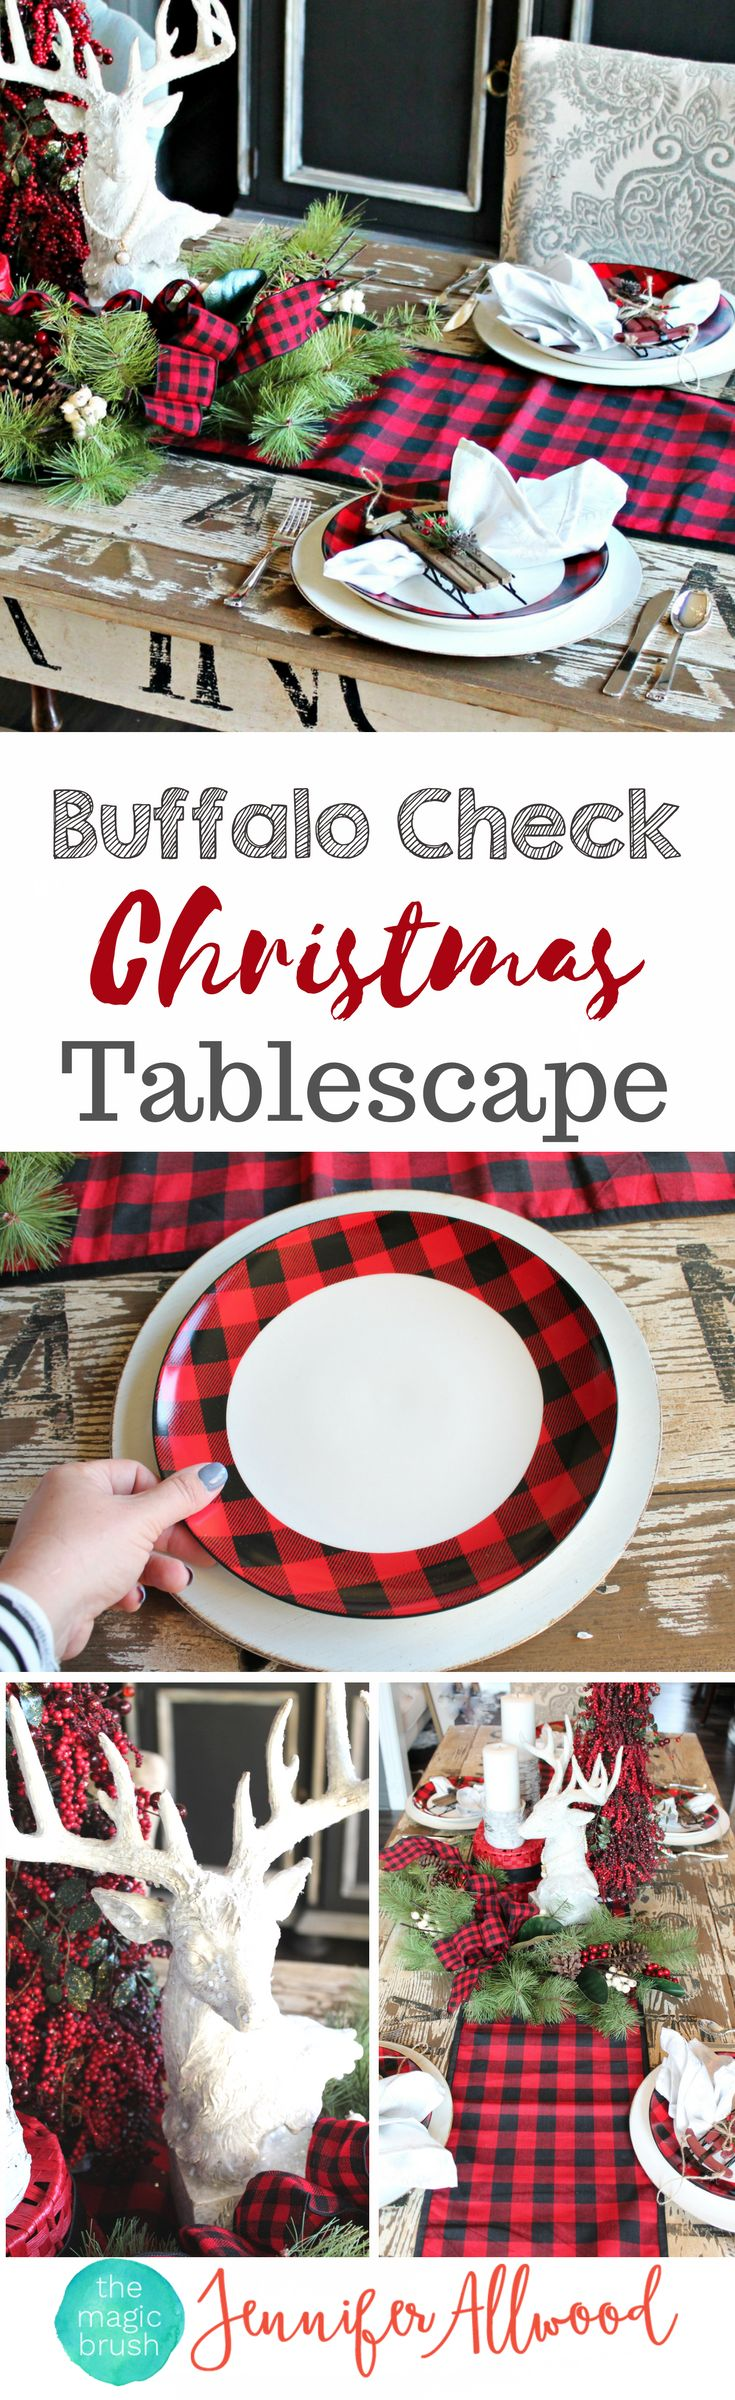 Buffalo Check Christmas Decorating by theMagicBrushinc.com. This beautiful plaid tablescape cost less than $100 from Hobby Lobby. Love these Tartan Christmas Decorating Ideas!